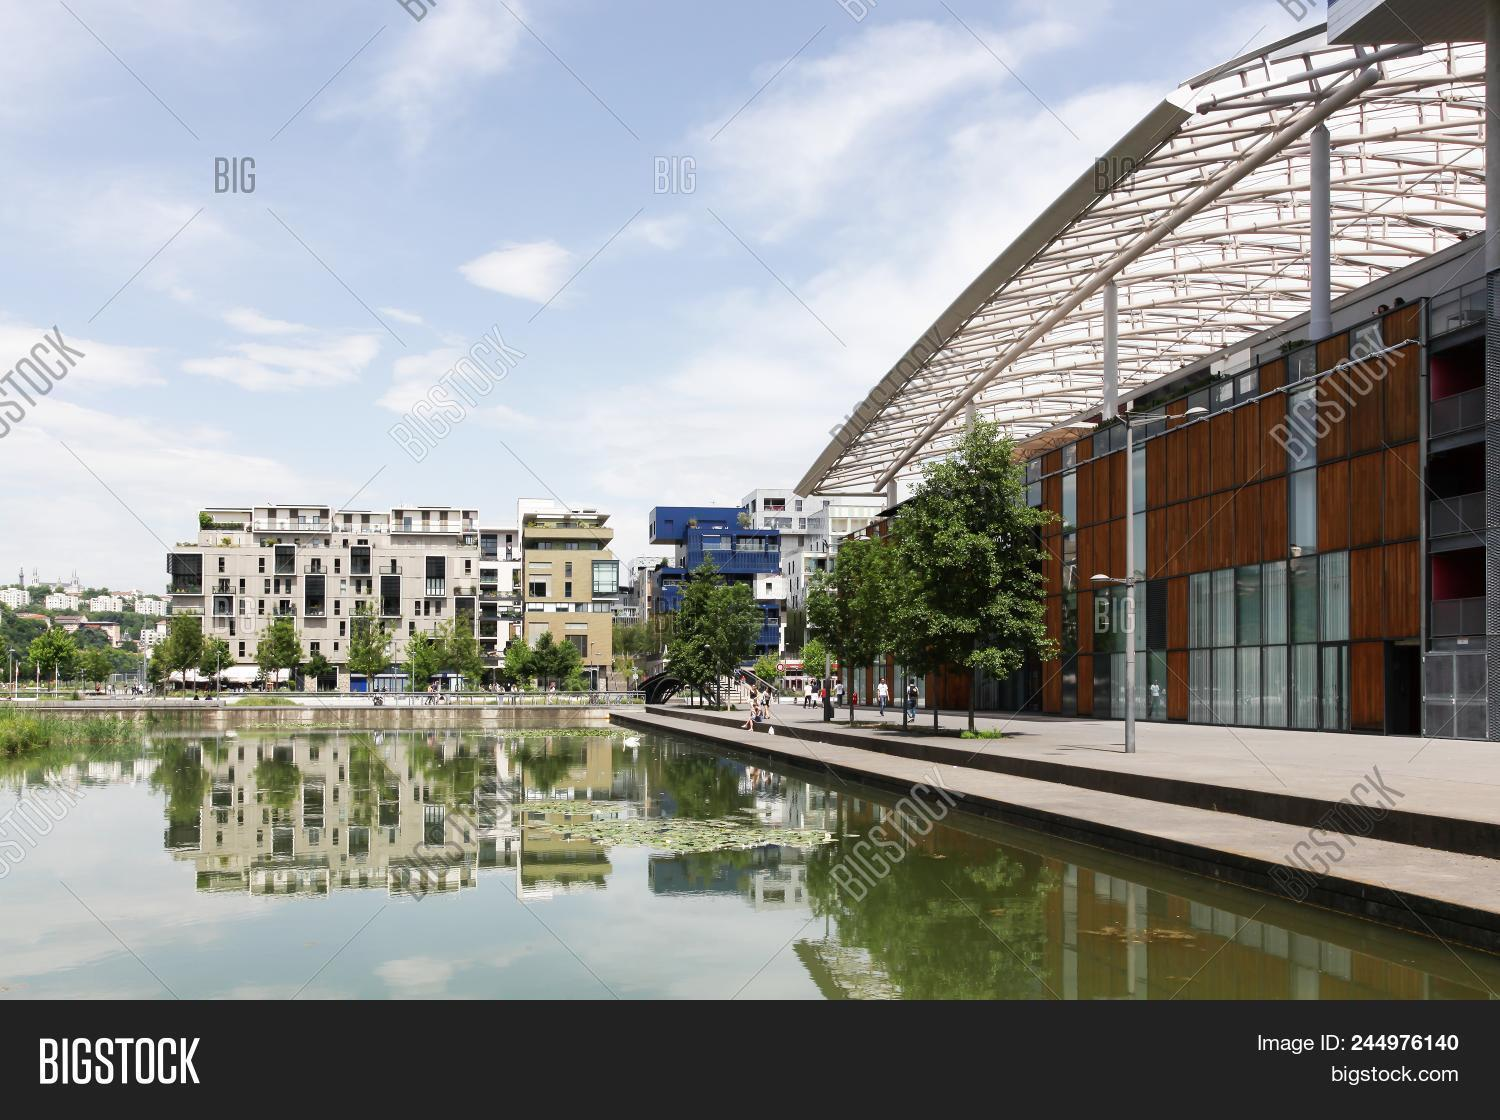 Confluence District Image Photo Free Trial Bigstock